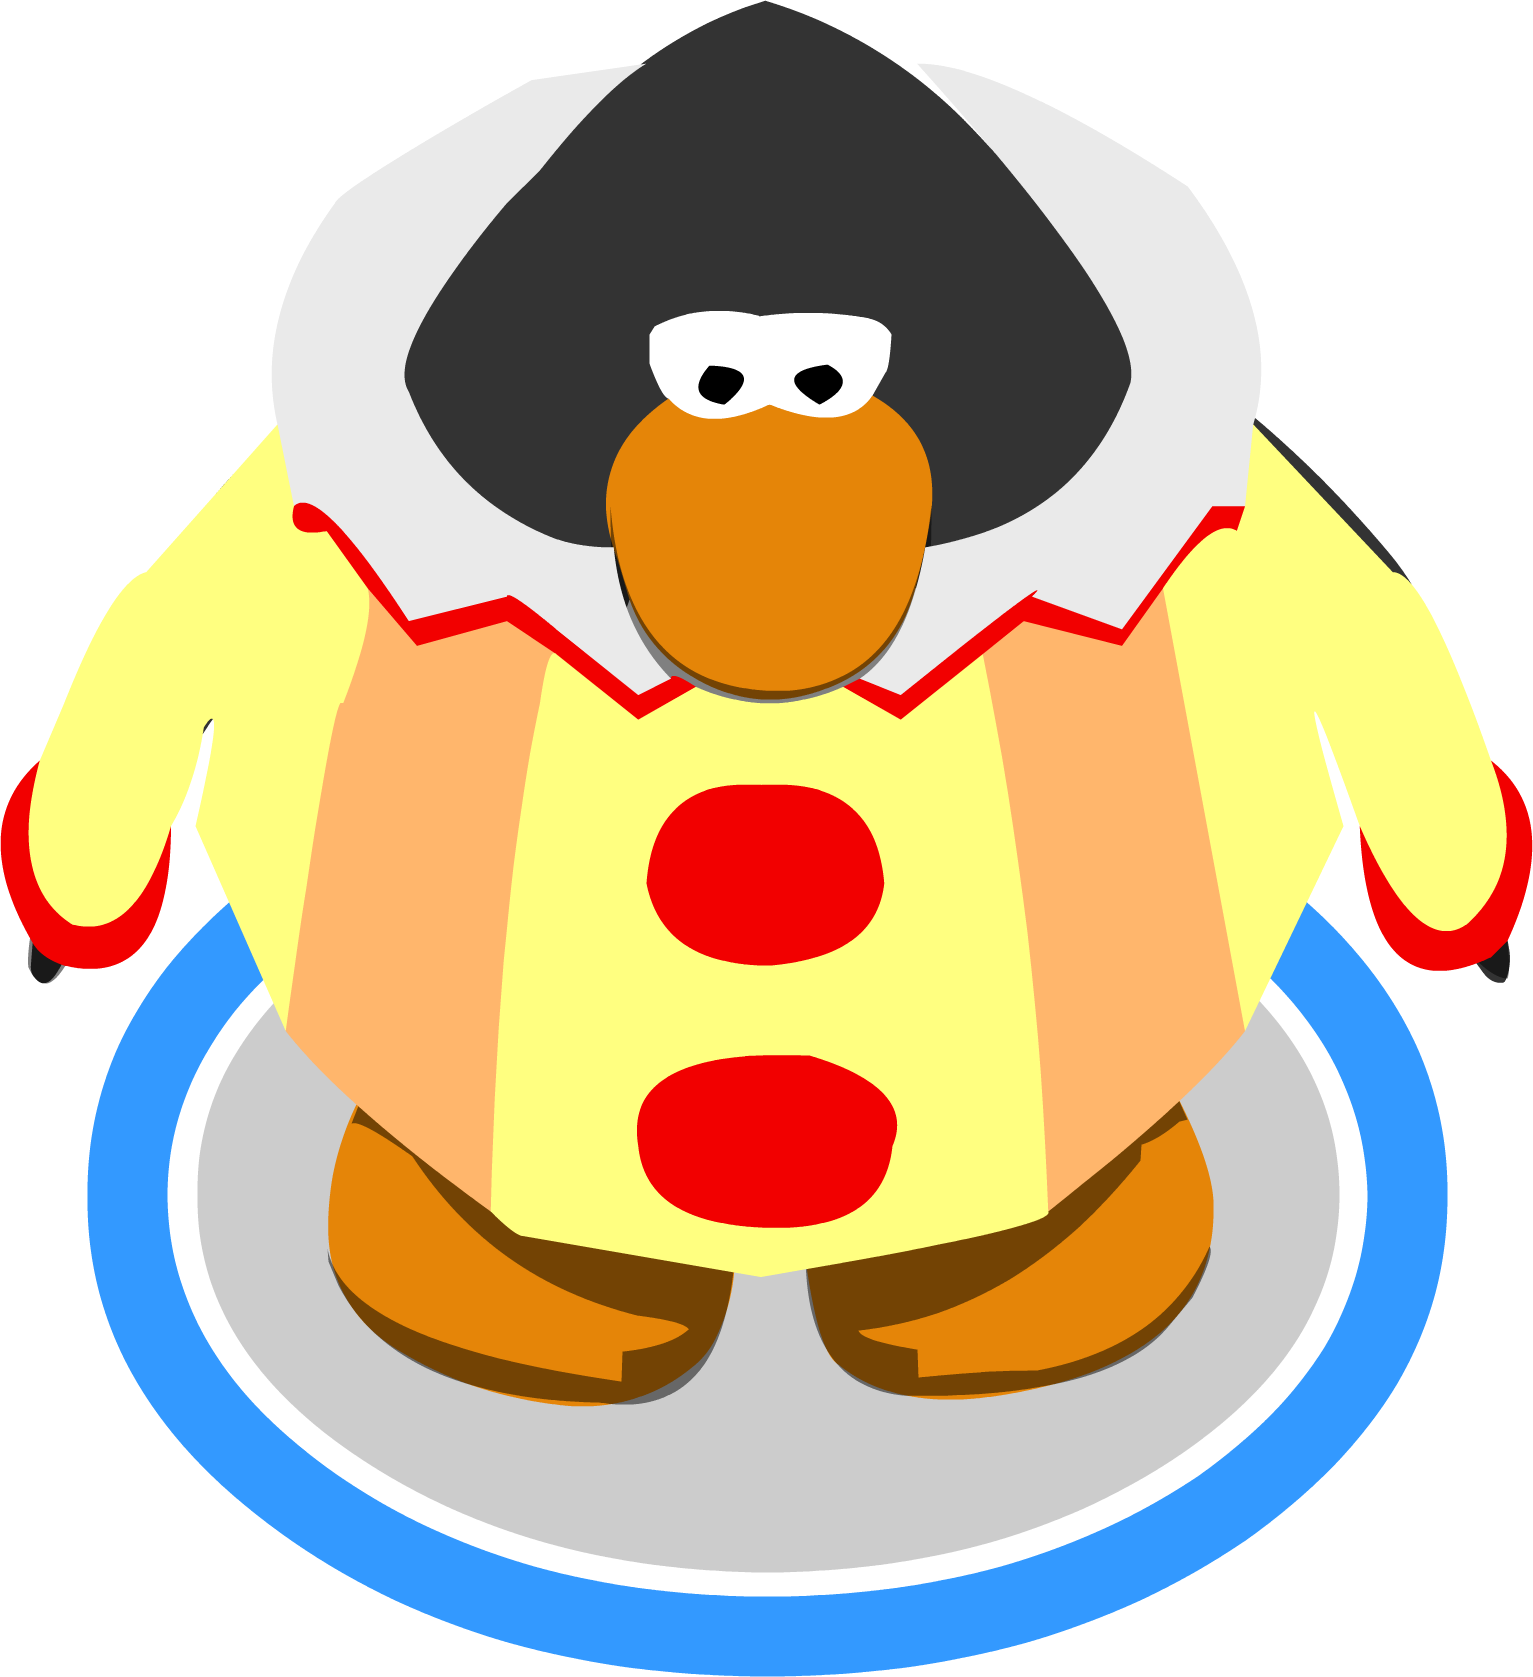 Clown costume png. Image in game club